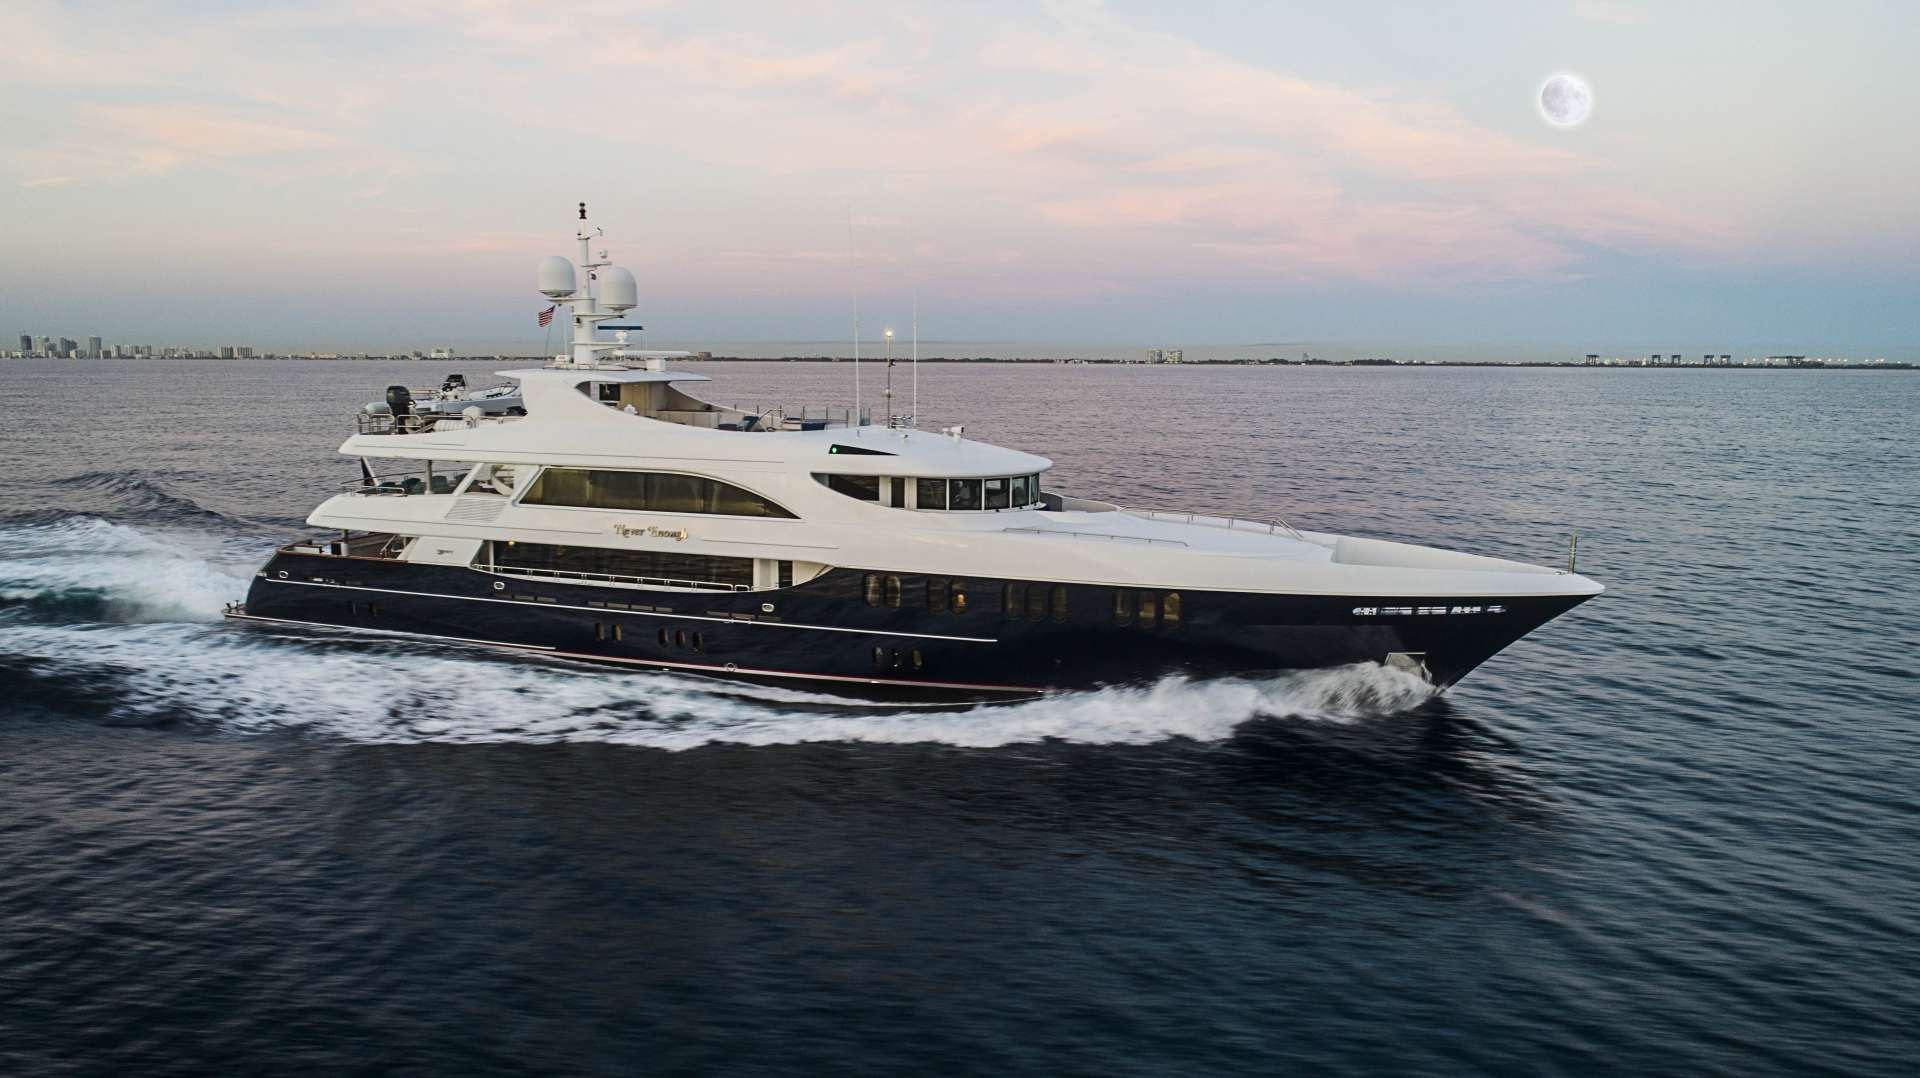 Power Yacht 'Power', 11 PAX, 9 Crew, 157.00 Ft, 47.00 Meters, Built 2006, Trinity Yachts, Refit Year 2018